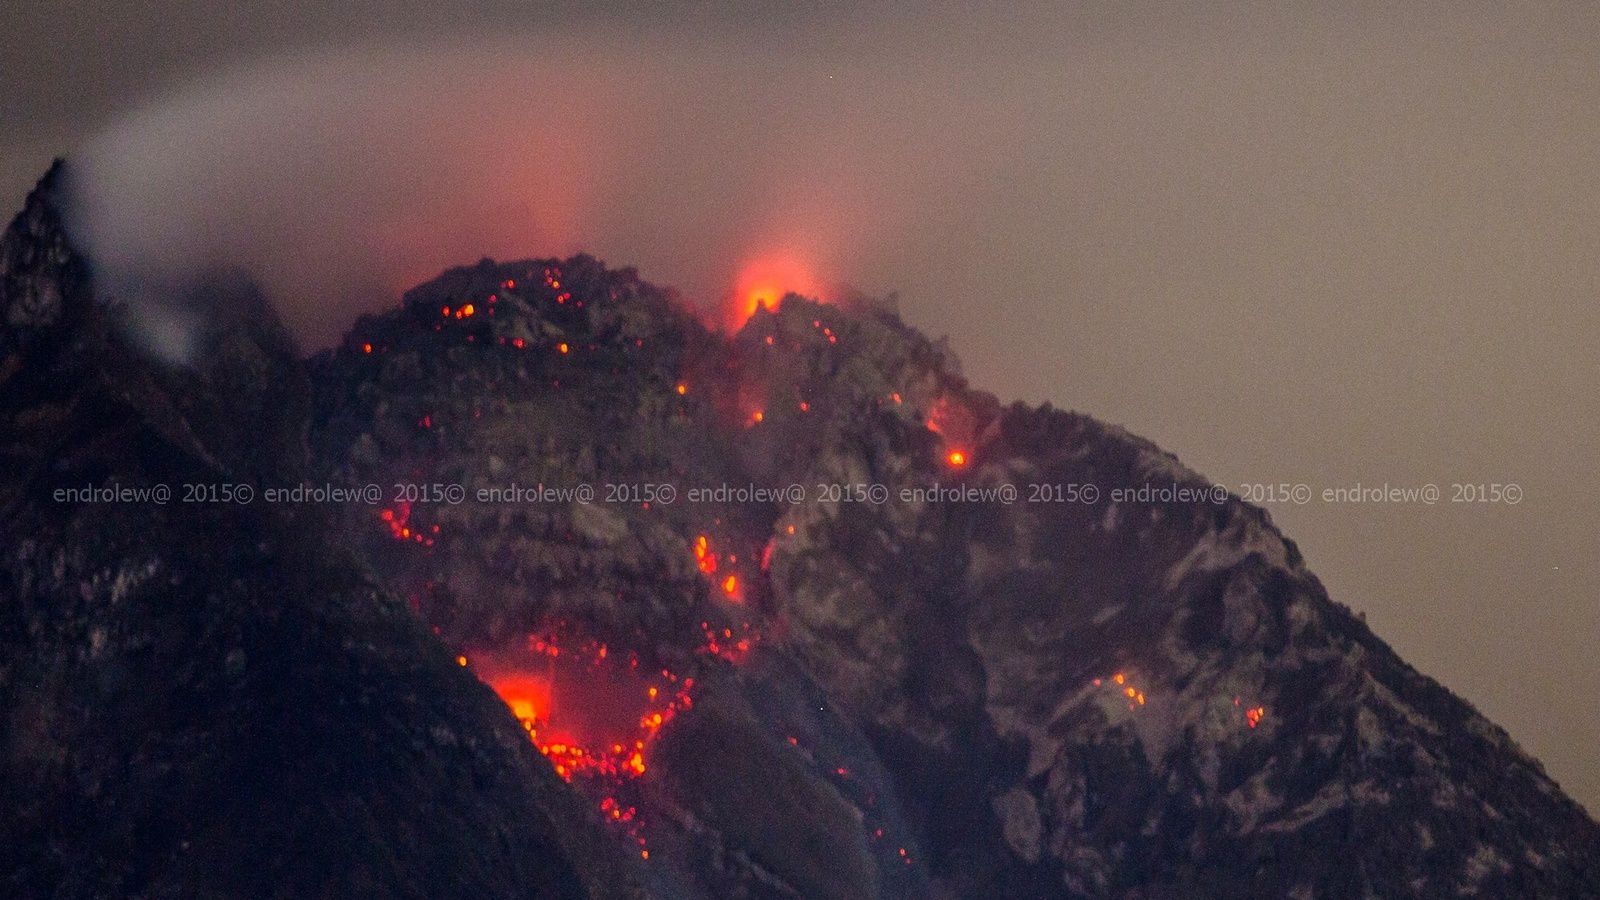 Sinabung the 27.05.2015 / 3:03 - photo endrolew@